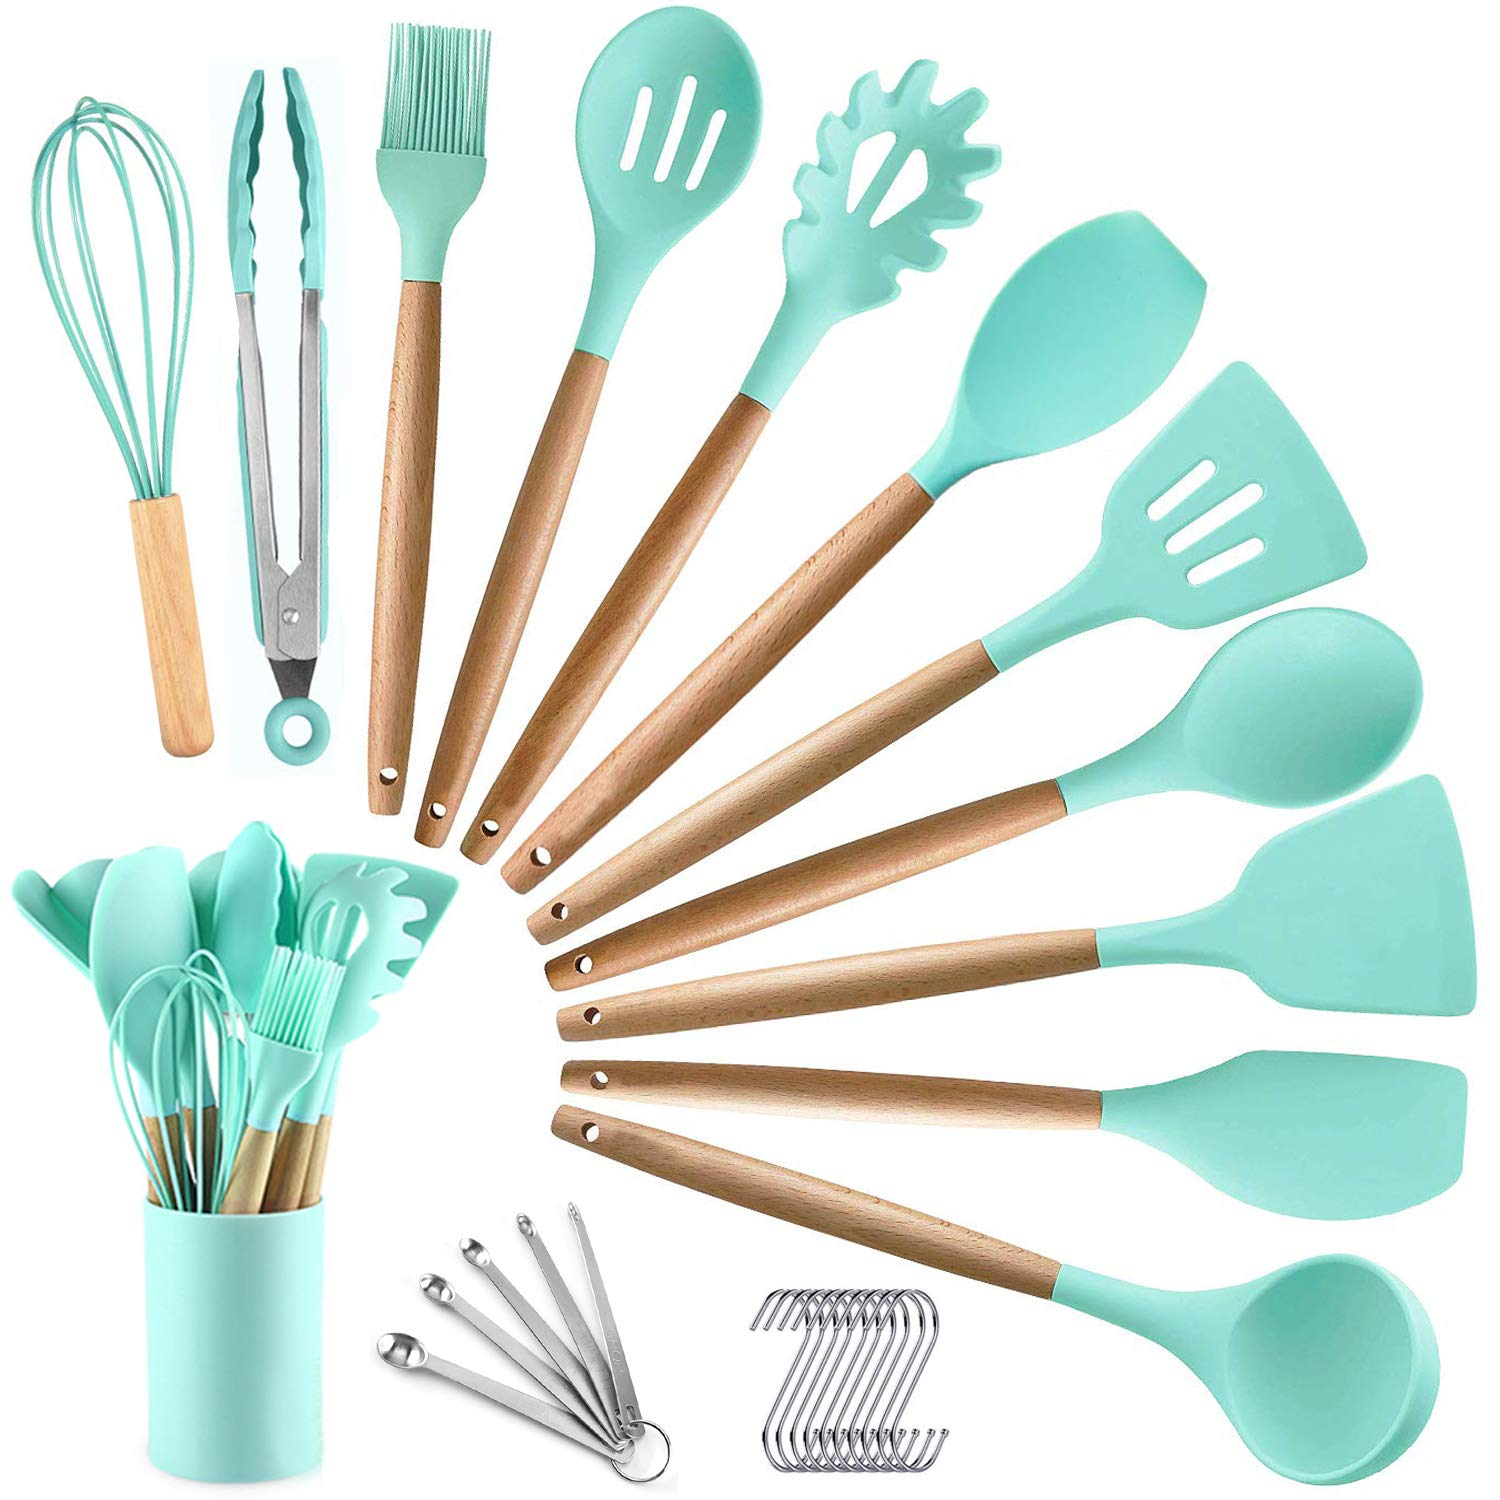 Great utensil set and good quality